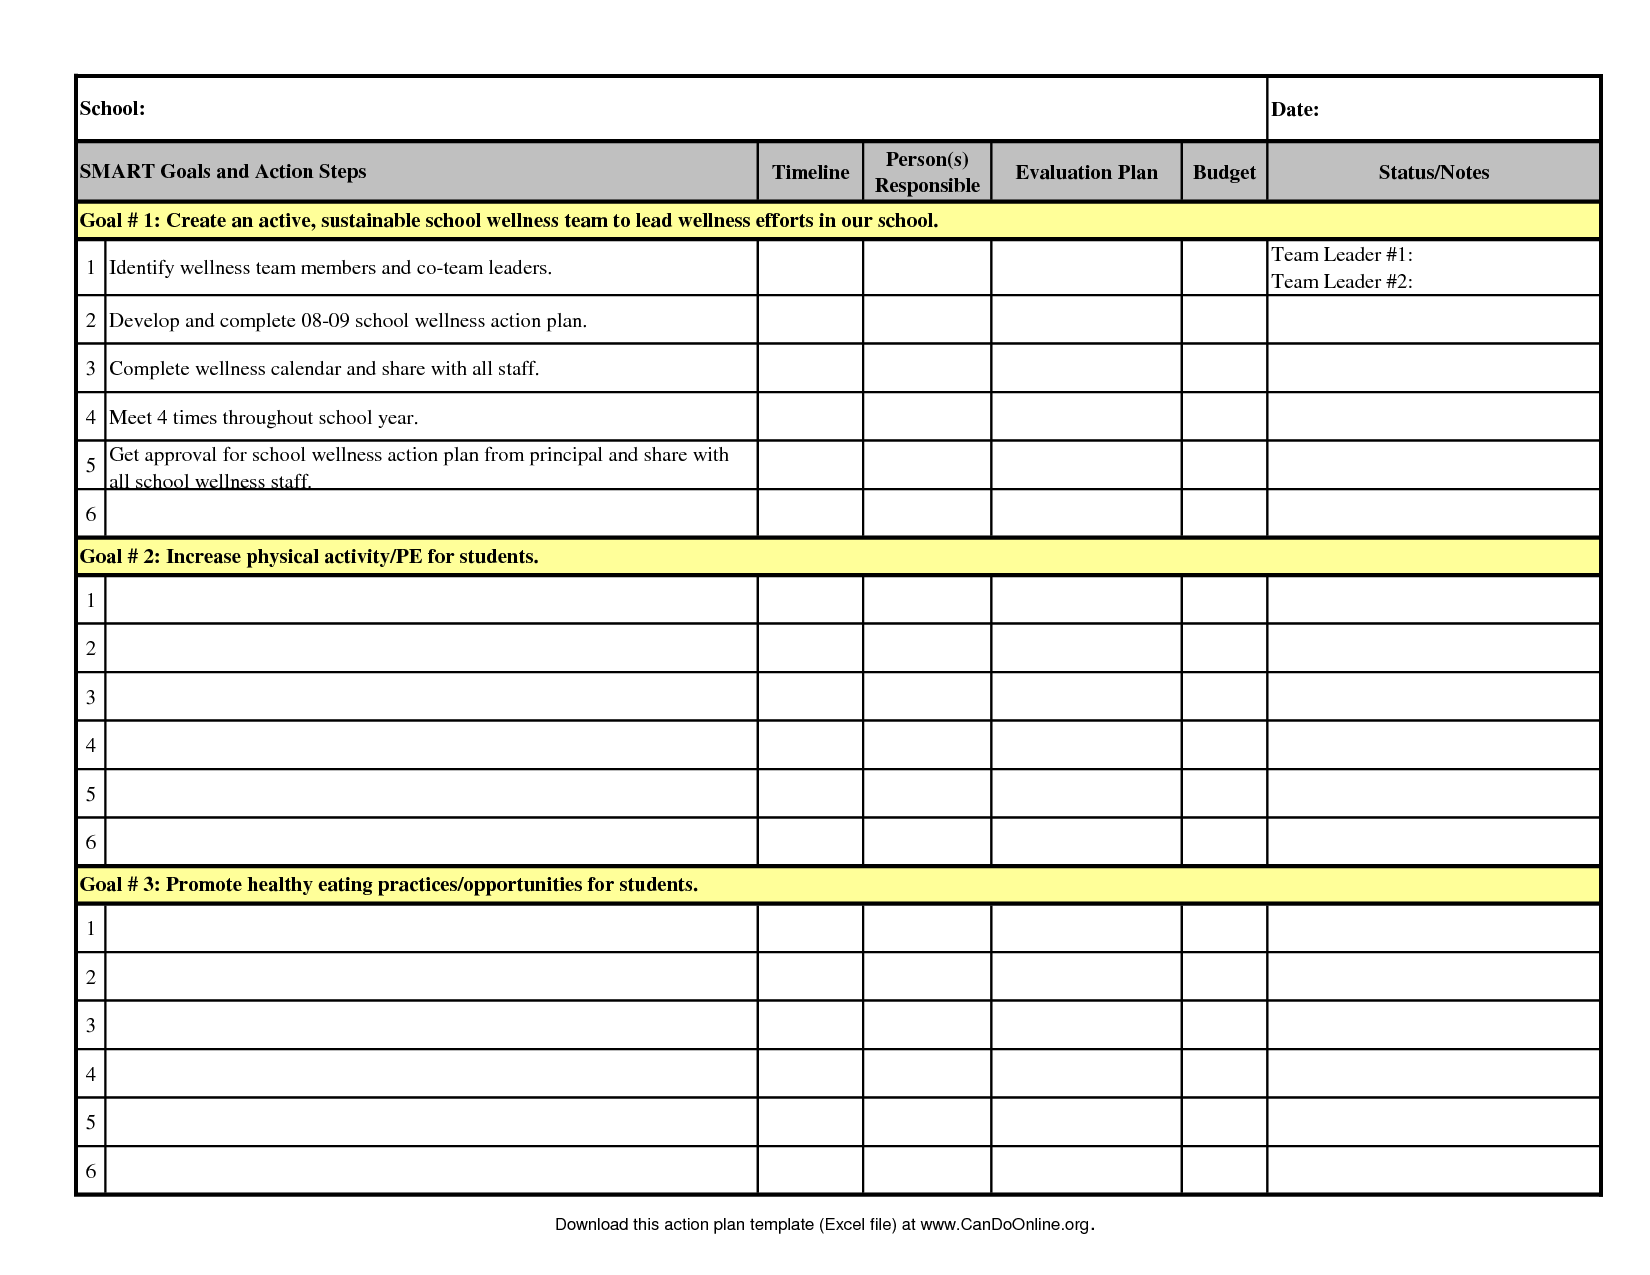 Free Project Schedule Template Excel and Action Plan Template 2008 09 Excel T68noboj Vision Goals